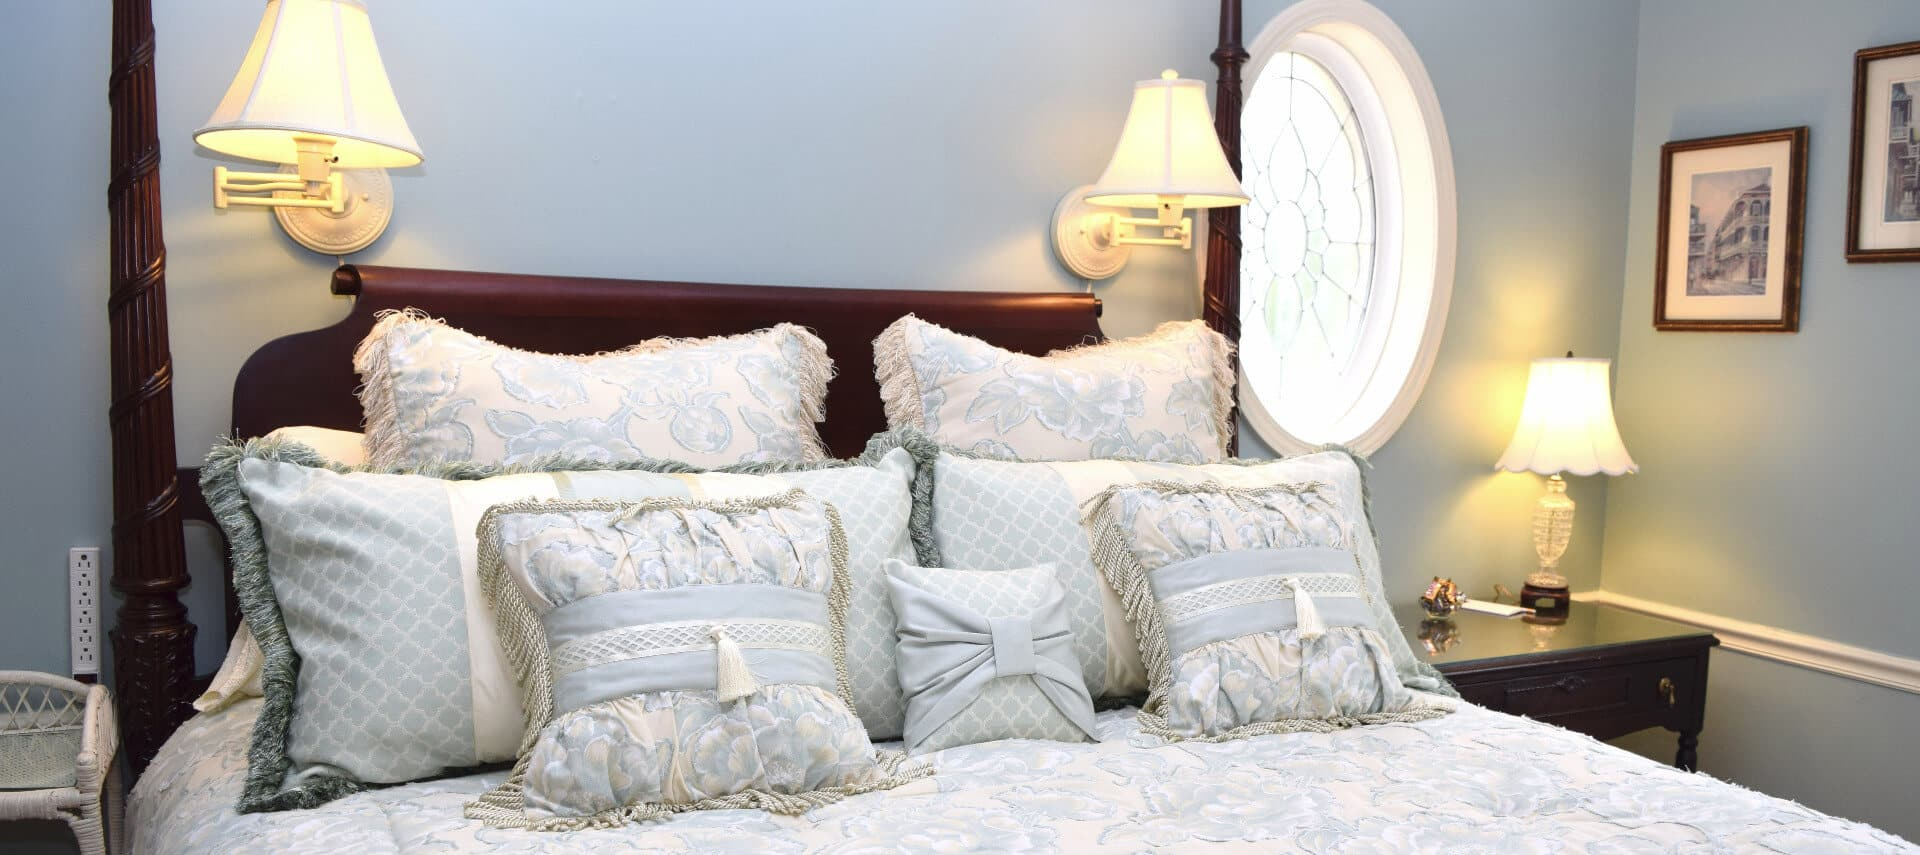 Large four-poster bed made up in white with many decorative pillows.